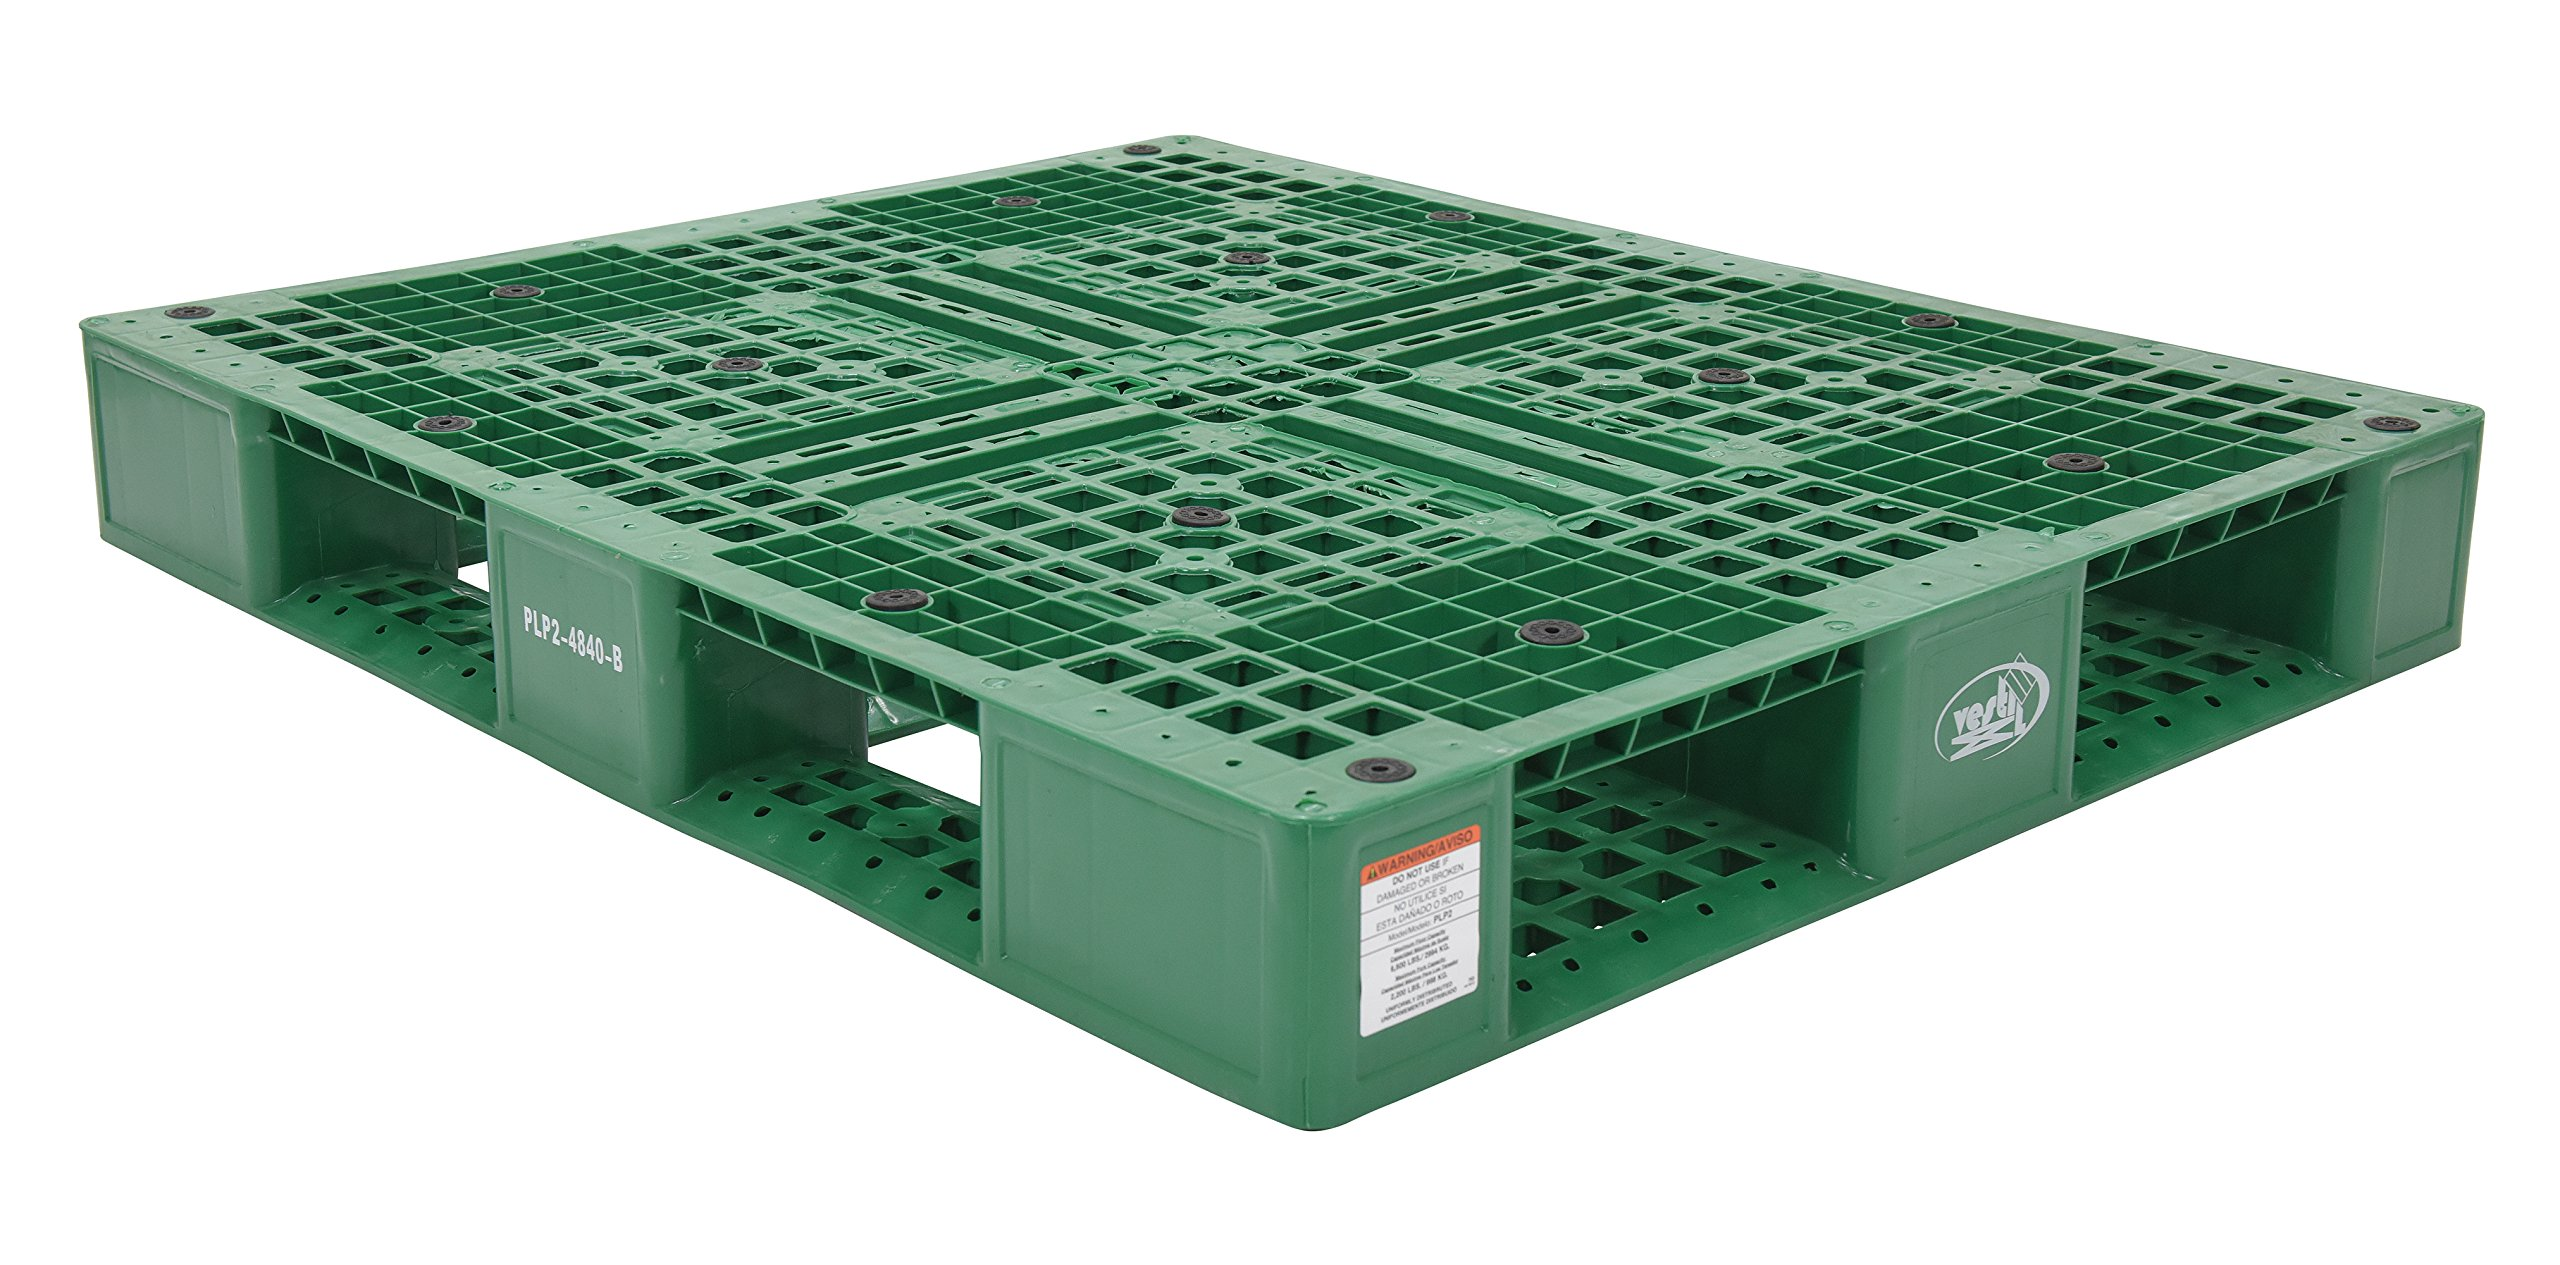 Vestil PLP2-4840-GREEN Green Polyethylene Pallet with 4 Way Entry, 6600 lbs Capacity, 39.5'' Length, 47.375'' Width, 6'' Height